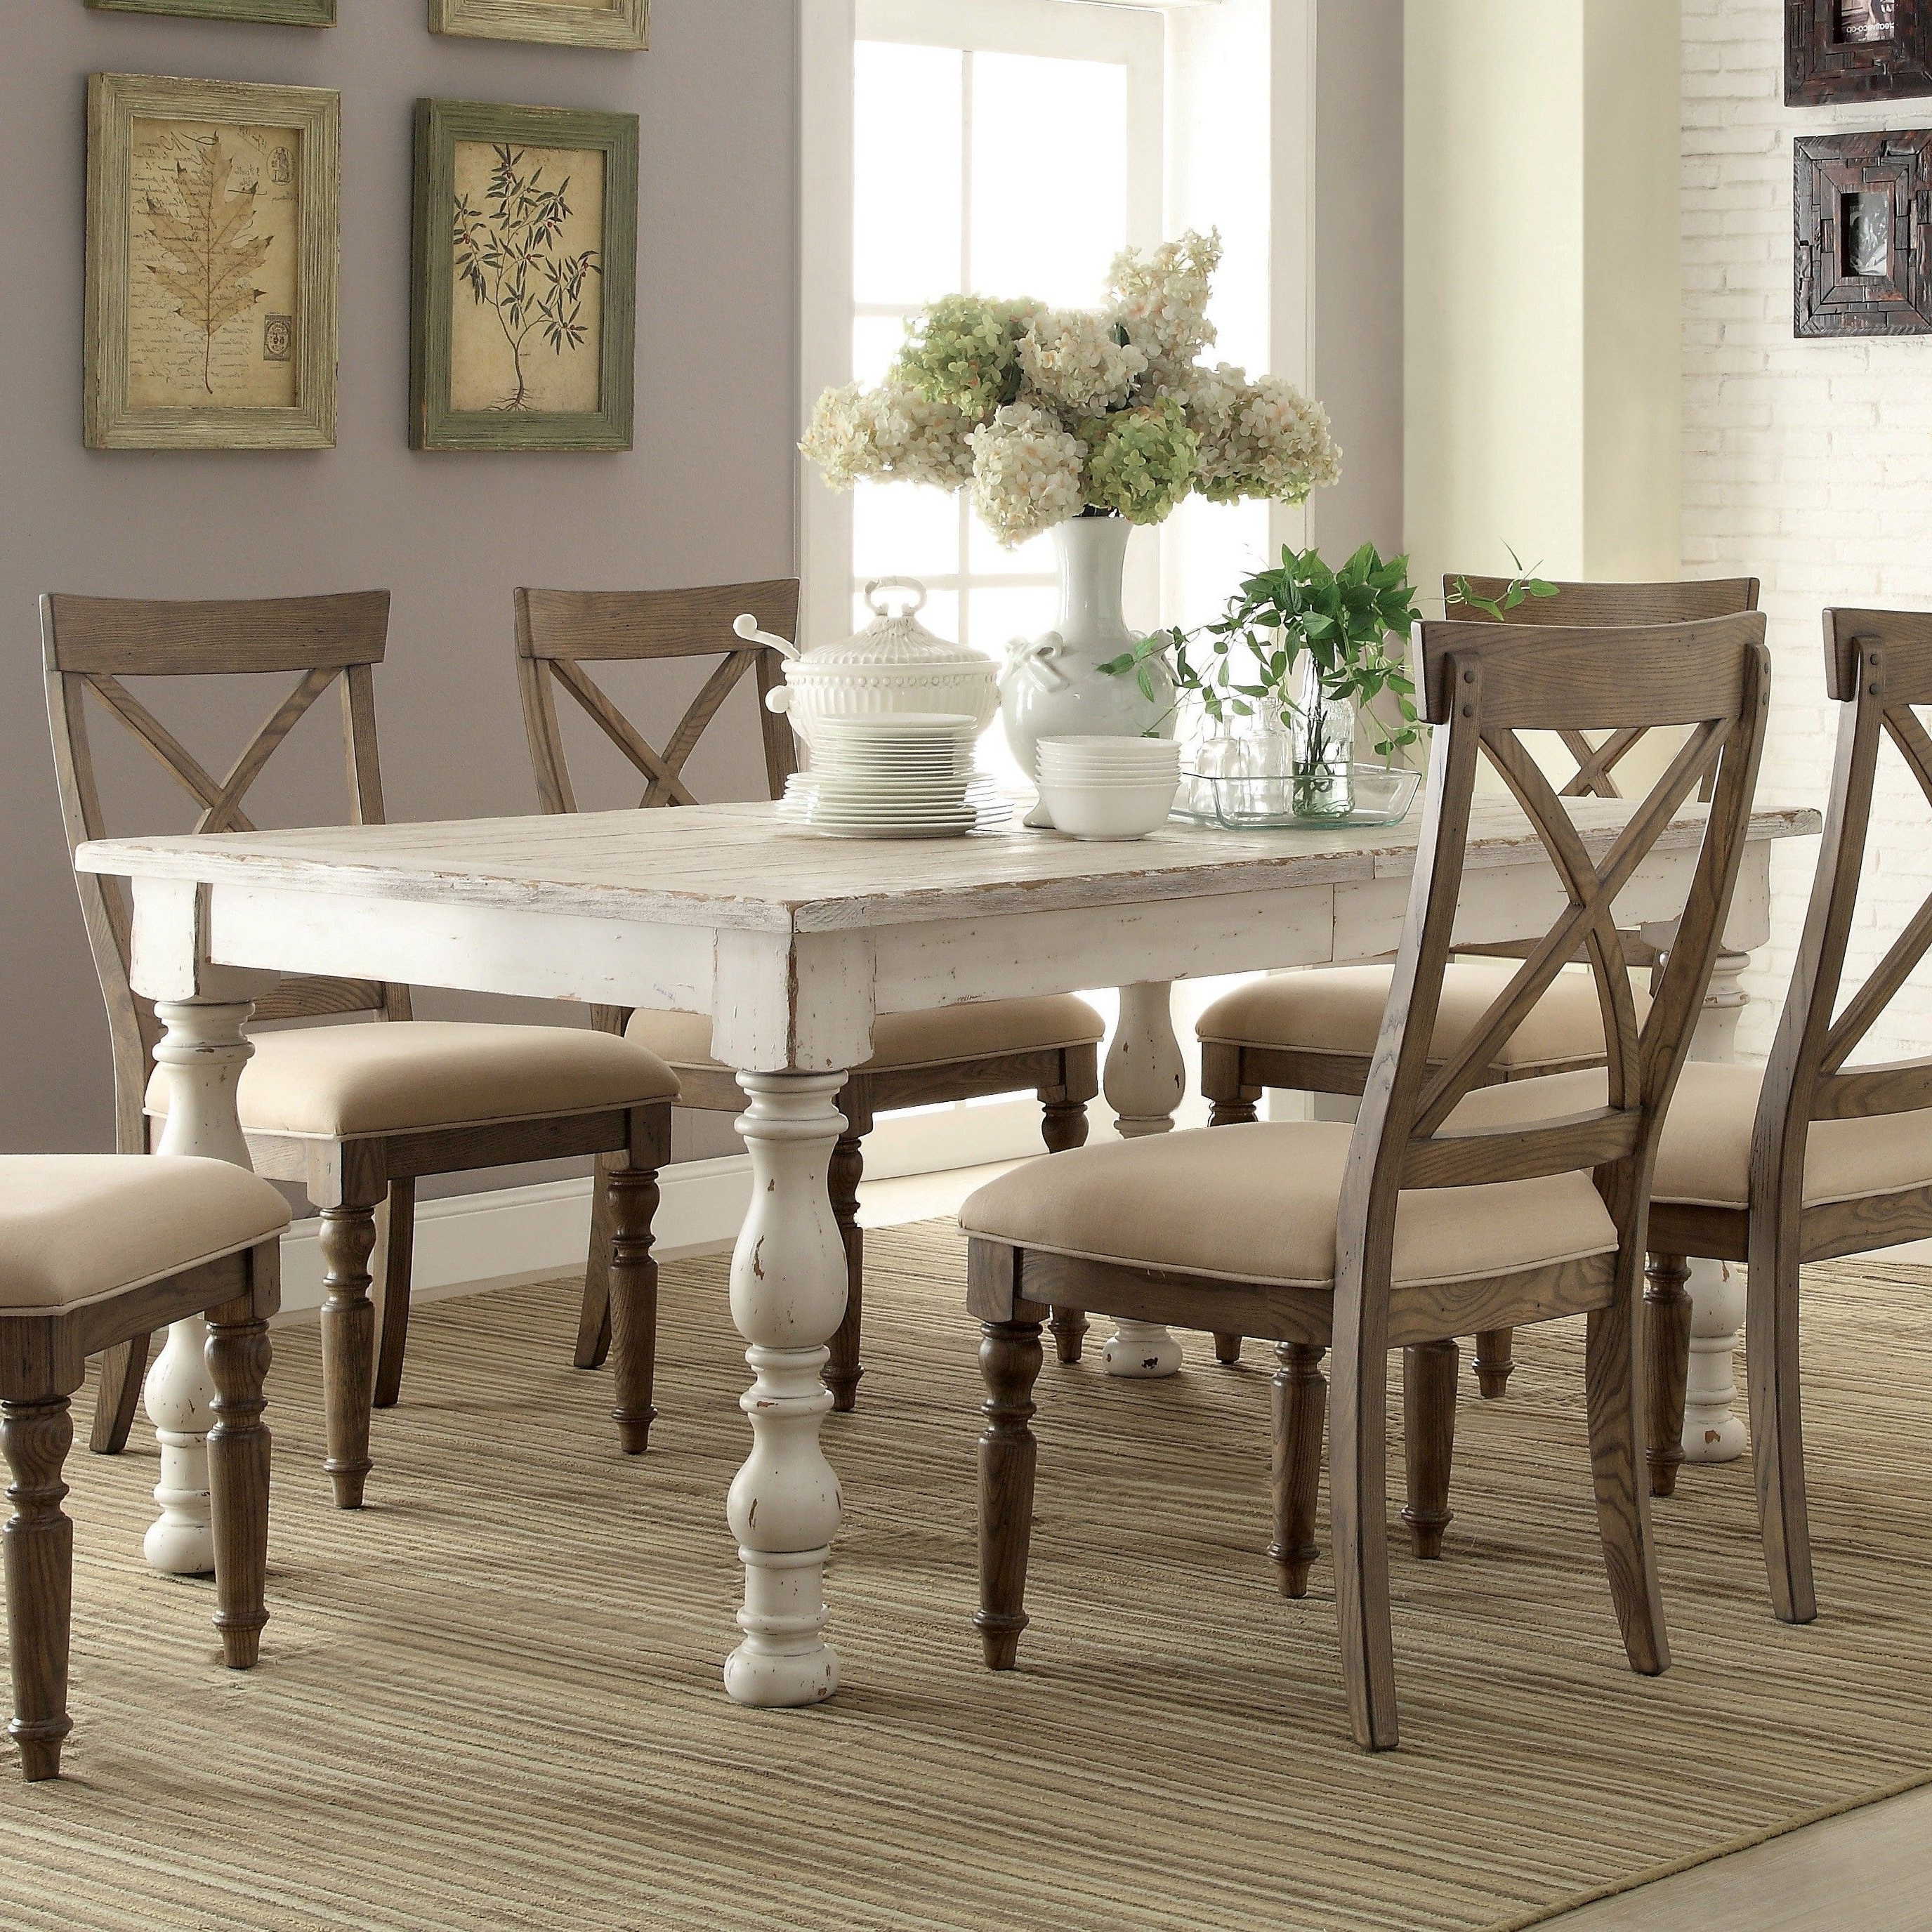 Aberdeen Wood Rectangular Dining Table Only In Weathered Worn White With Favorite Laurent 7 Piece Rectangle Dining Sets With Wood Chairs (View 5 of 25)